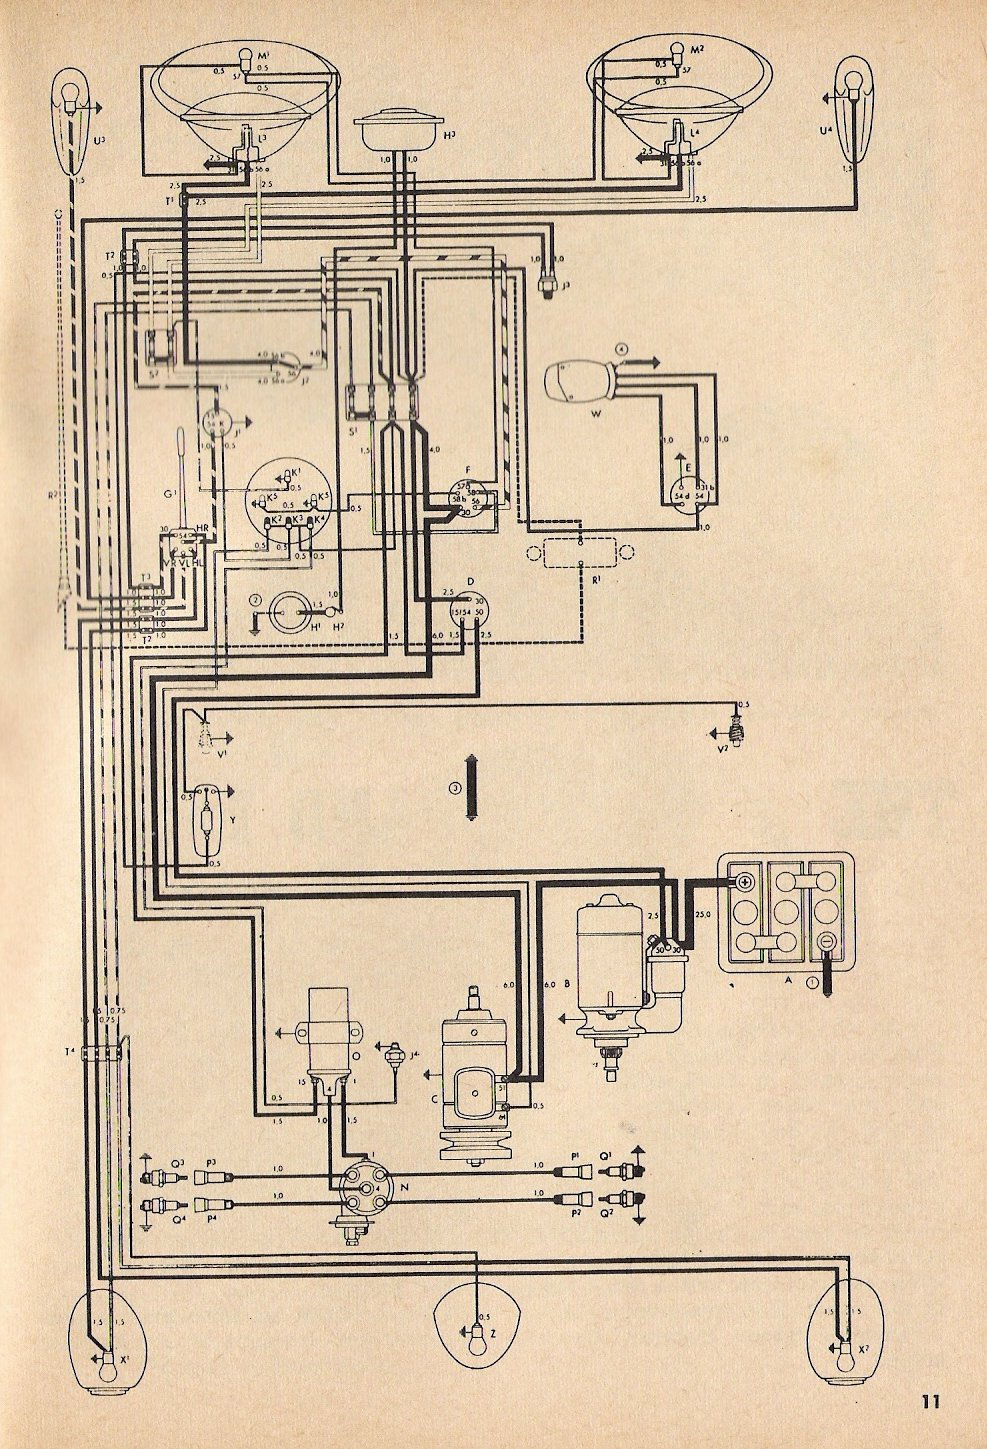 wiring diagram 1957 chevy 1967 vw beetle thesamba.com :: type 1 wiring diagrams #5